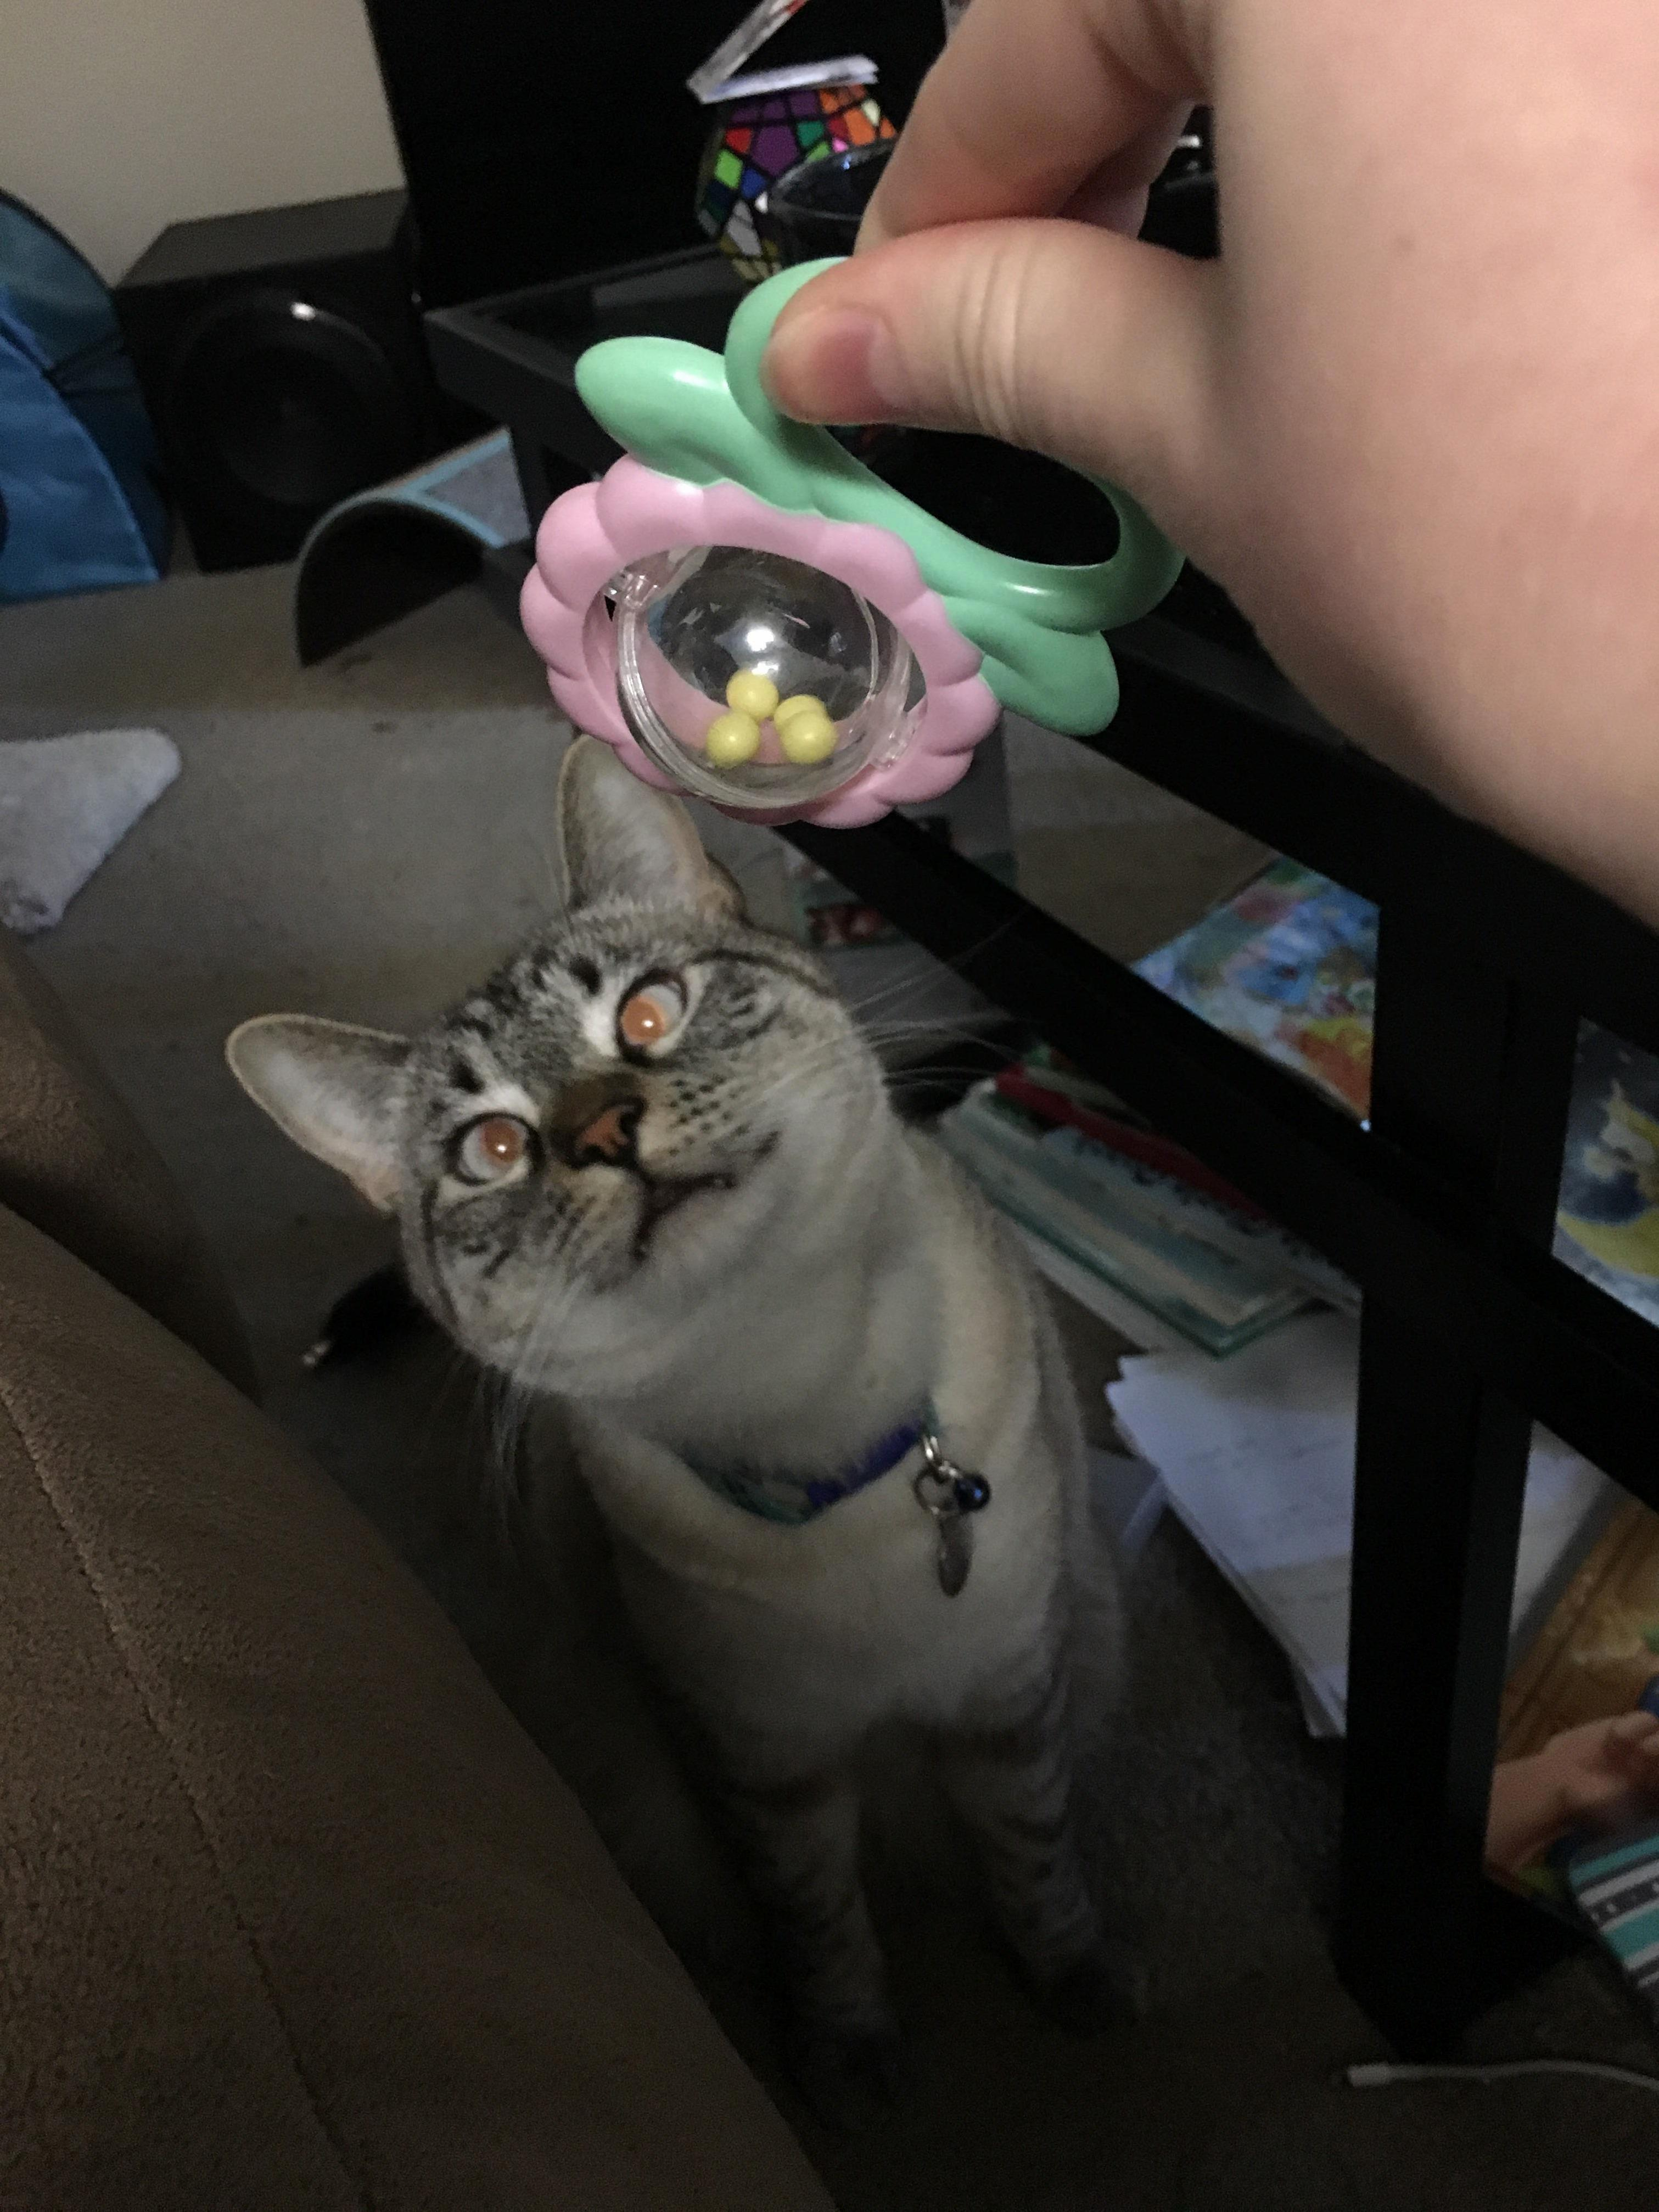 He was fascinated by the rattle